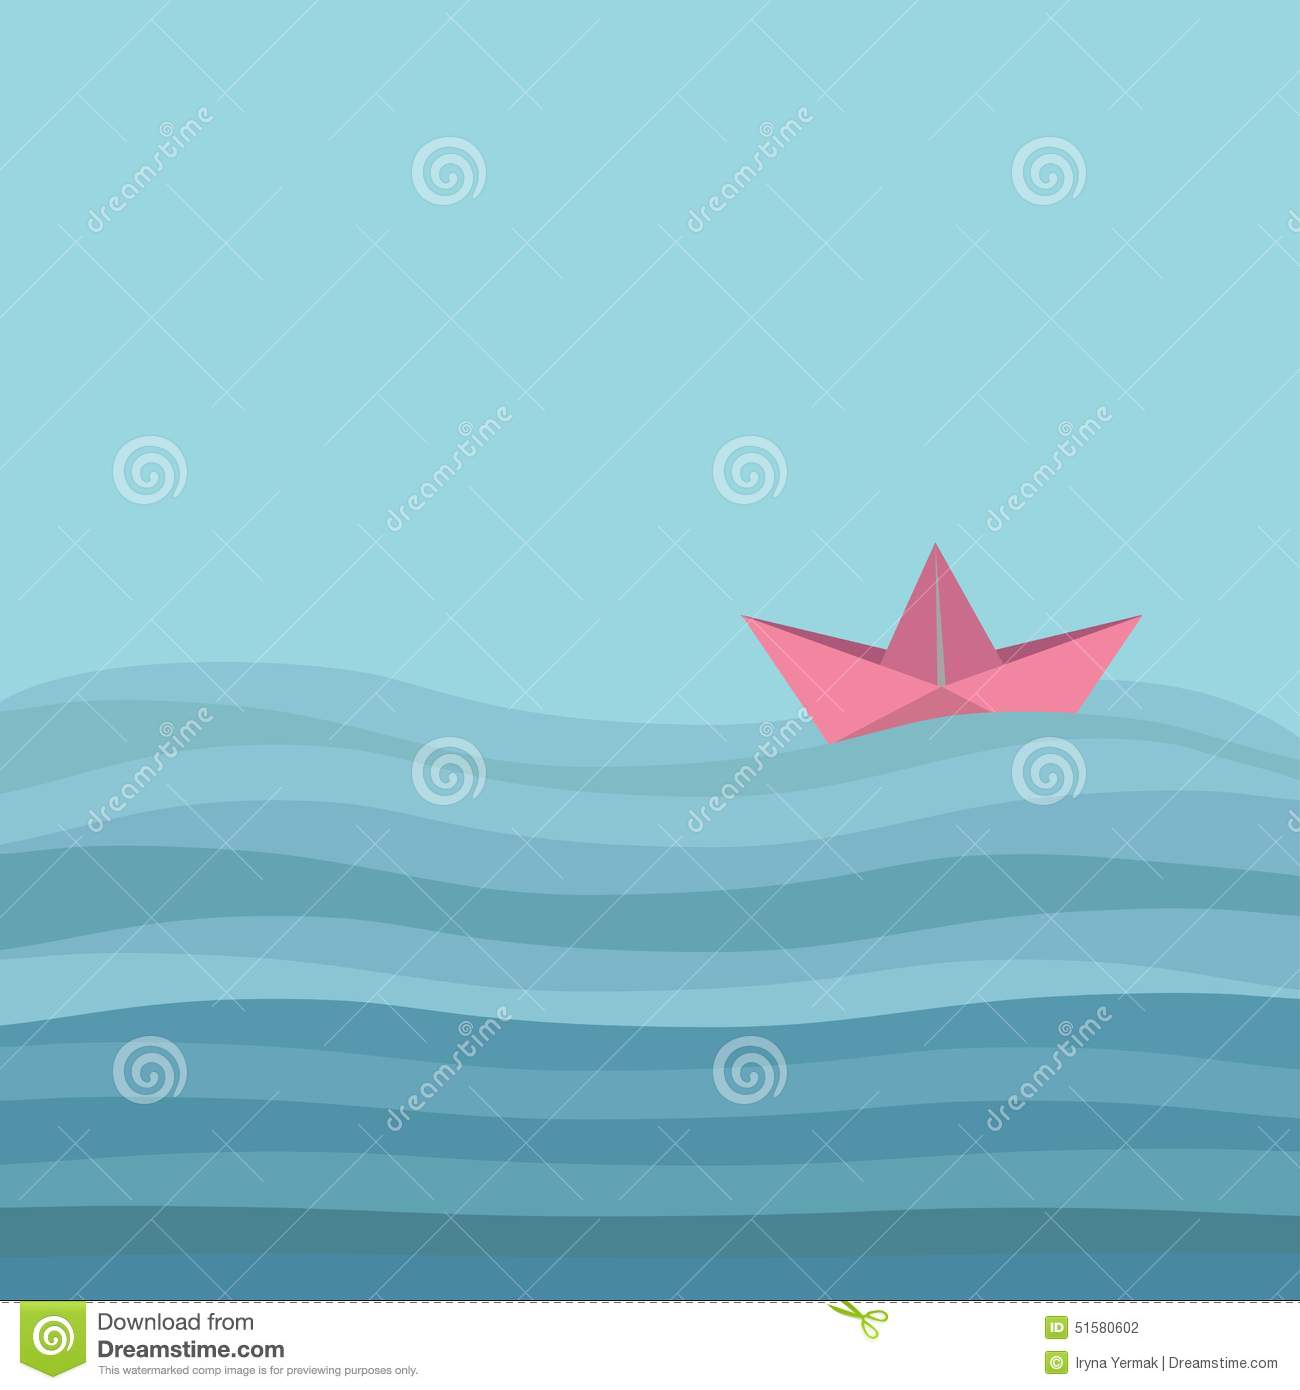 toy boat race with Stock Illustration Origami Paper Boat Ocean Sea Waves Flat Design Love Card Vector Illustration Image51580602 on Watch besides rpmtrailersales additionally Tug Rc also Small Plastic Pulley moreover Watch.